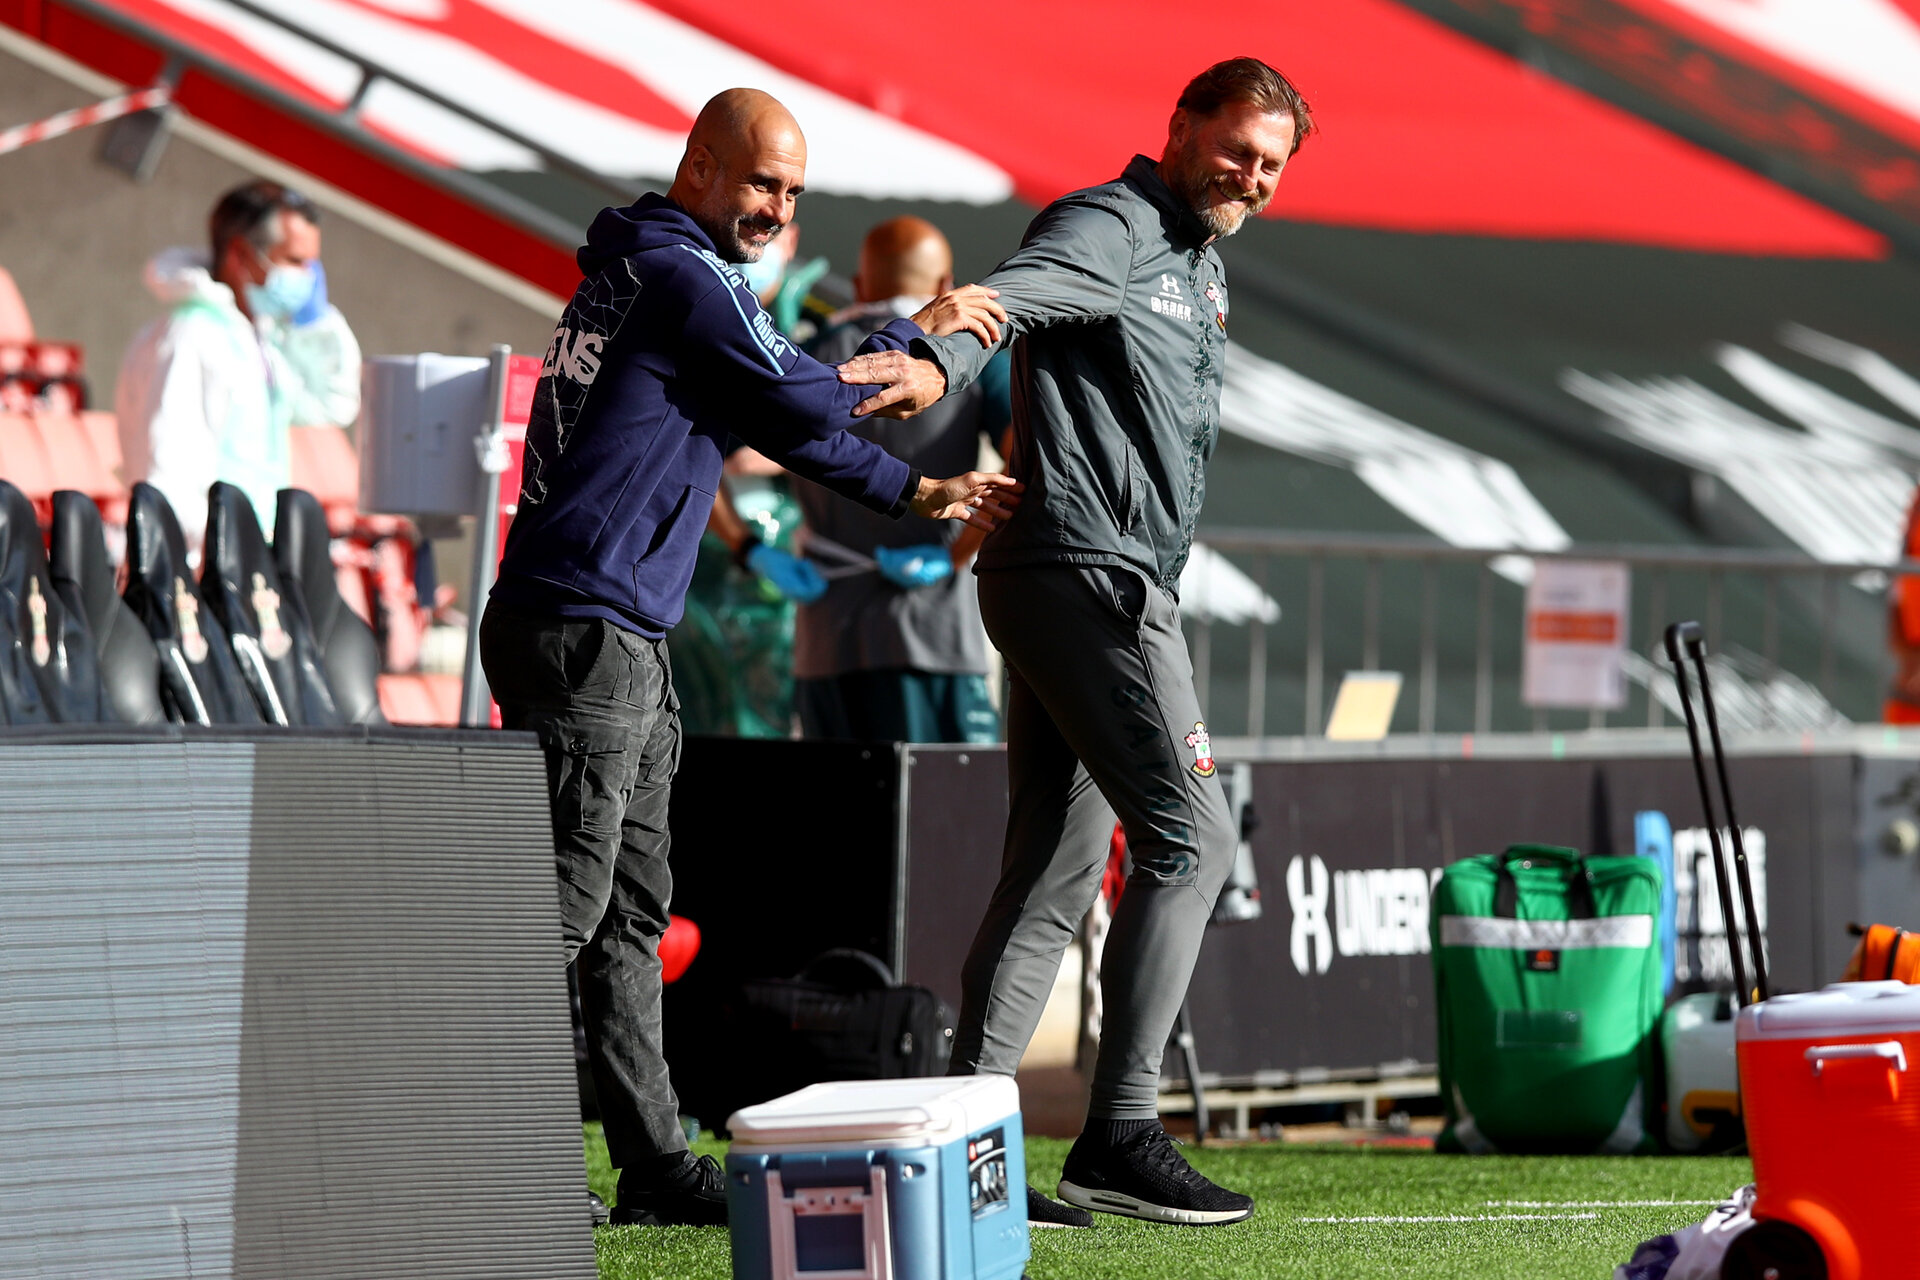 SOUTHAMPTON, ENGLAND - JULY 05: Ralph Hasenhuttl (L) and Pep Guardiola (R) ahead of the Premier League match between Southampton FC and Manchester City at St Mary's Stadium on July 5, 2020 in Southampton, United Kingdom. Football Stadiums around Europe remain empty due to the Coronavirus Pandemic as Government social distancing laws prohibit fans inside venues resulting in games being played behind closed doors. (Photo by Matt Watson/Southampton FC via Getty Images)